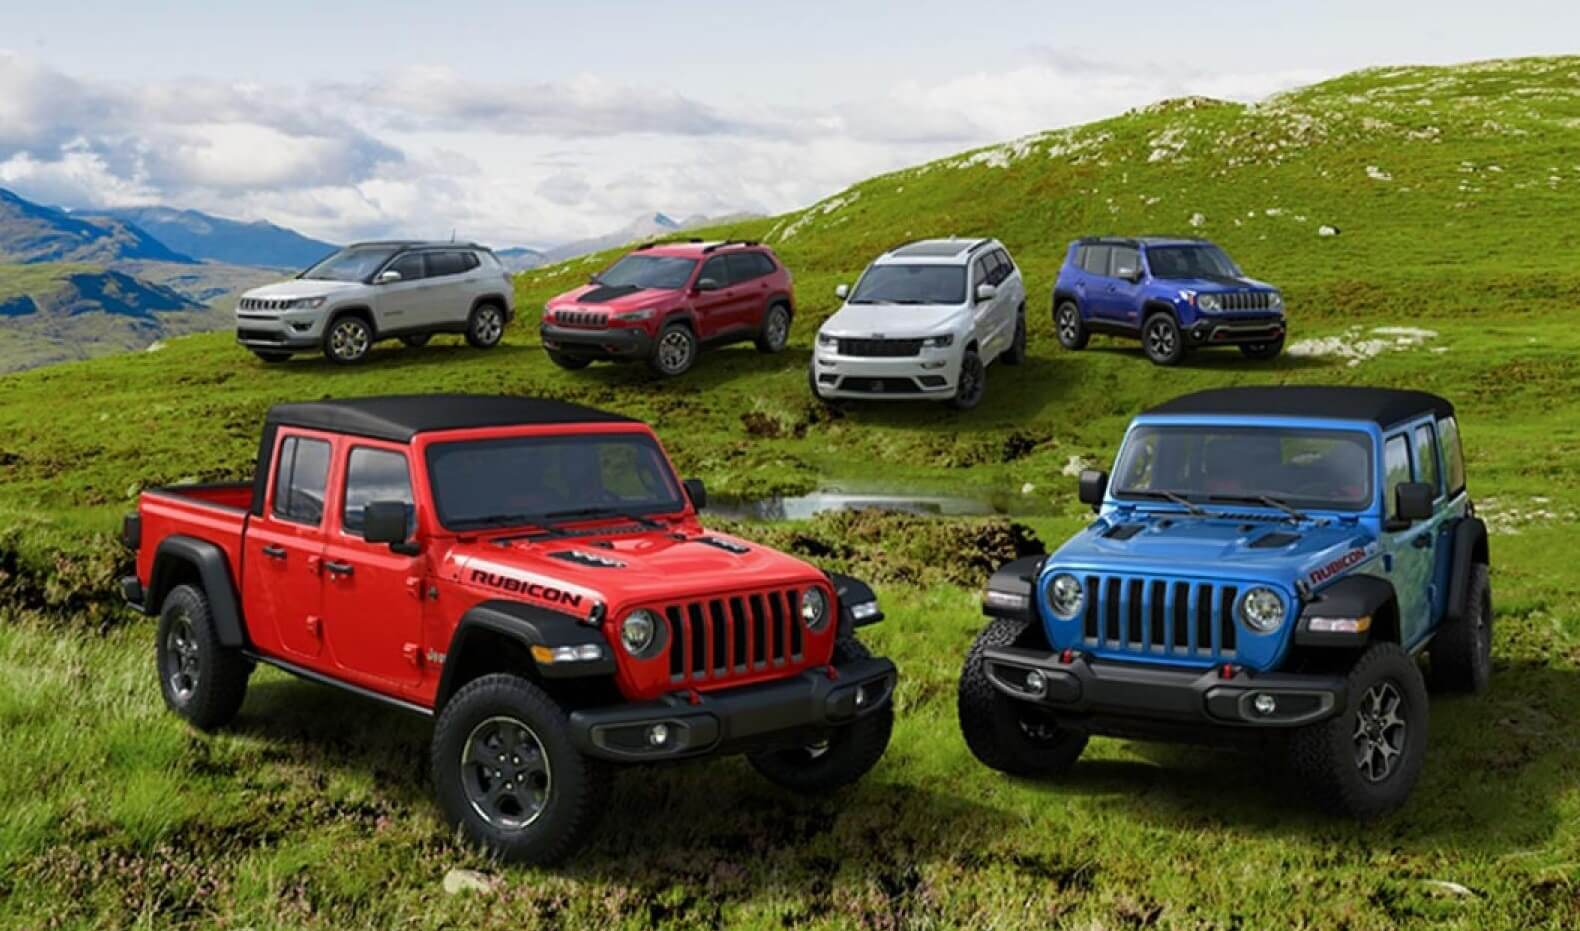 Puente Hills Jeep - Jeep Adventure Days near Anaheim CA